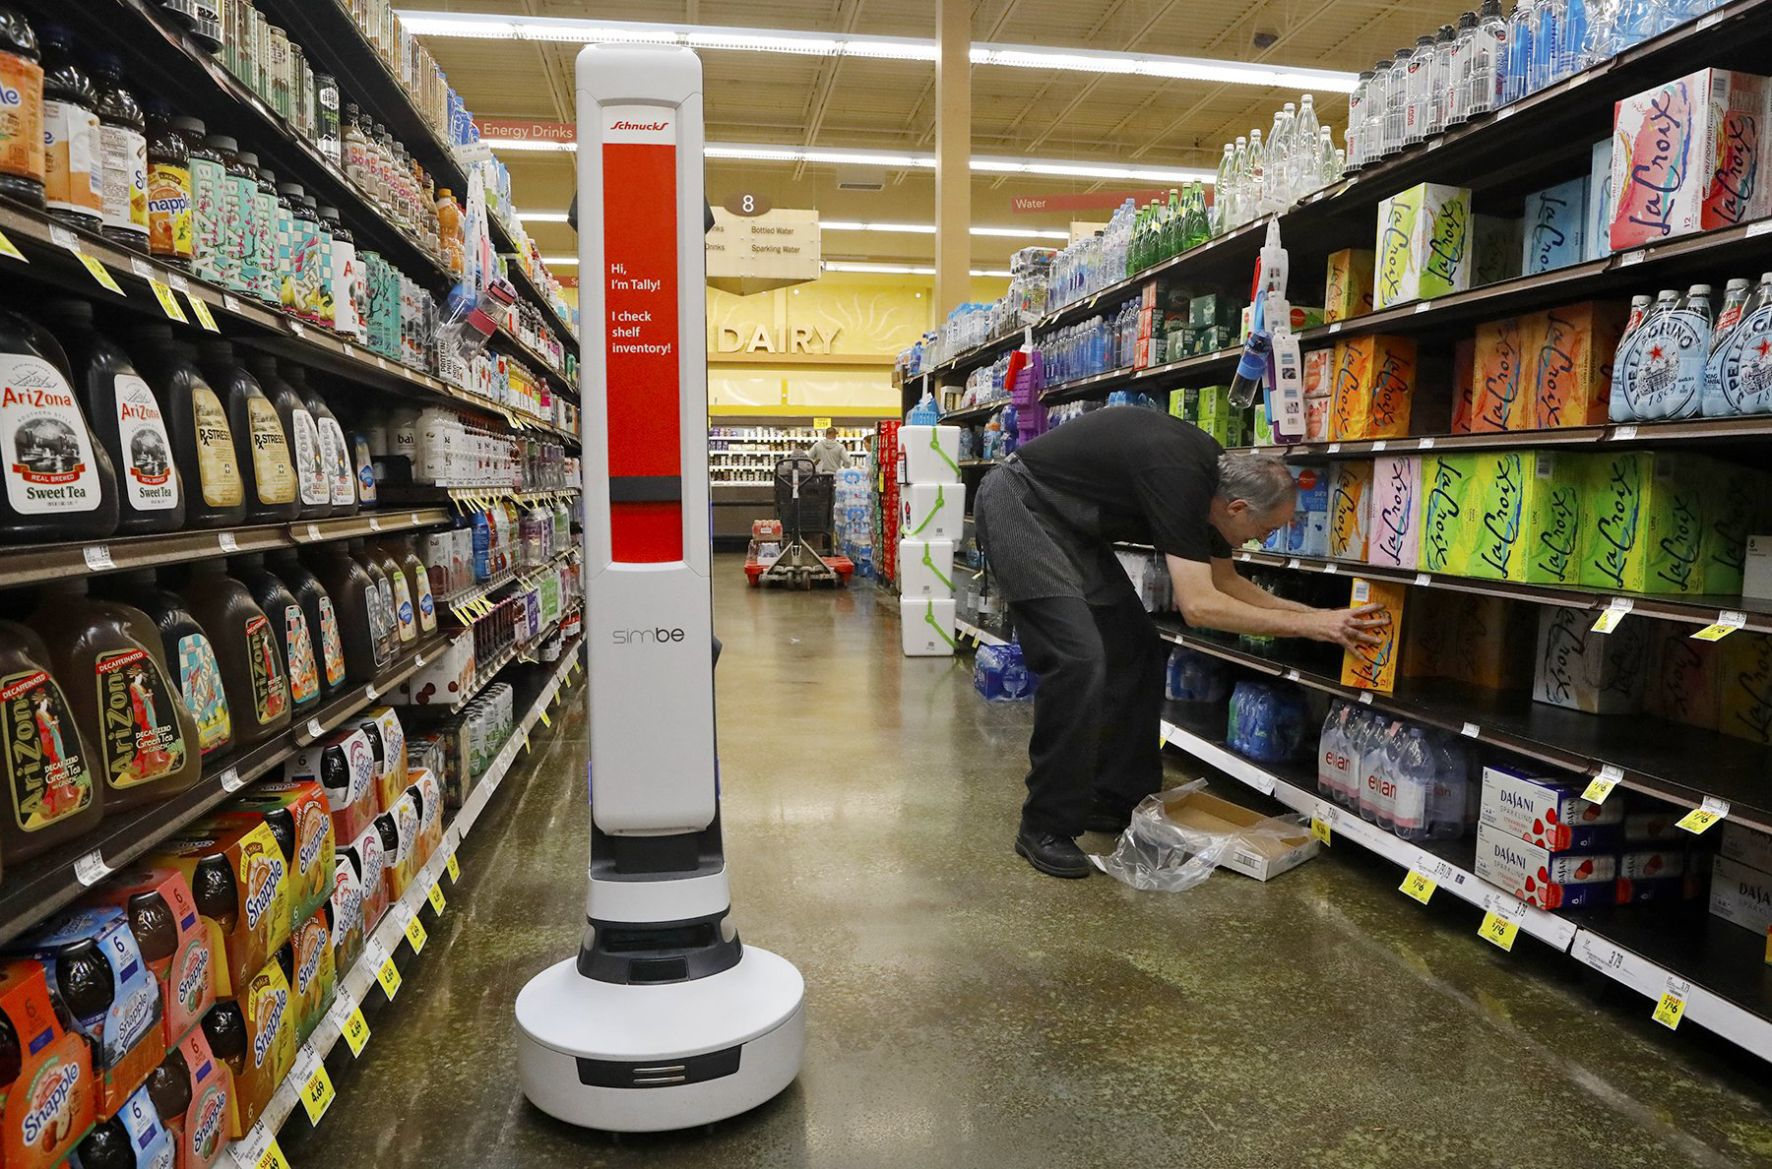 stltoday.com - Leah Thorsen - More robots coming to the aisles of Schnucks stores